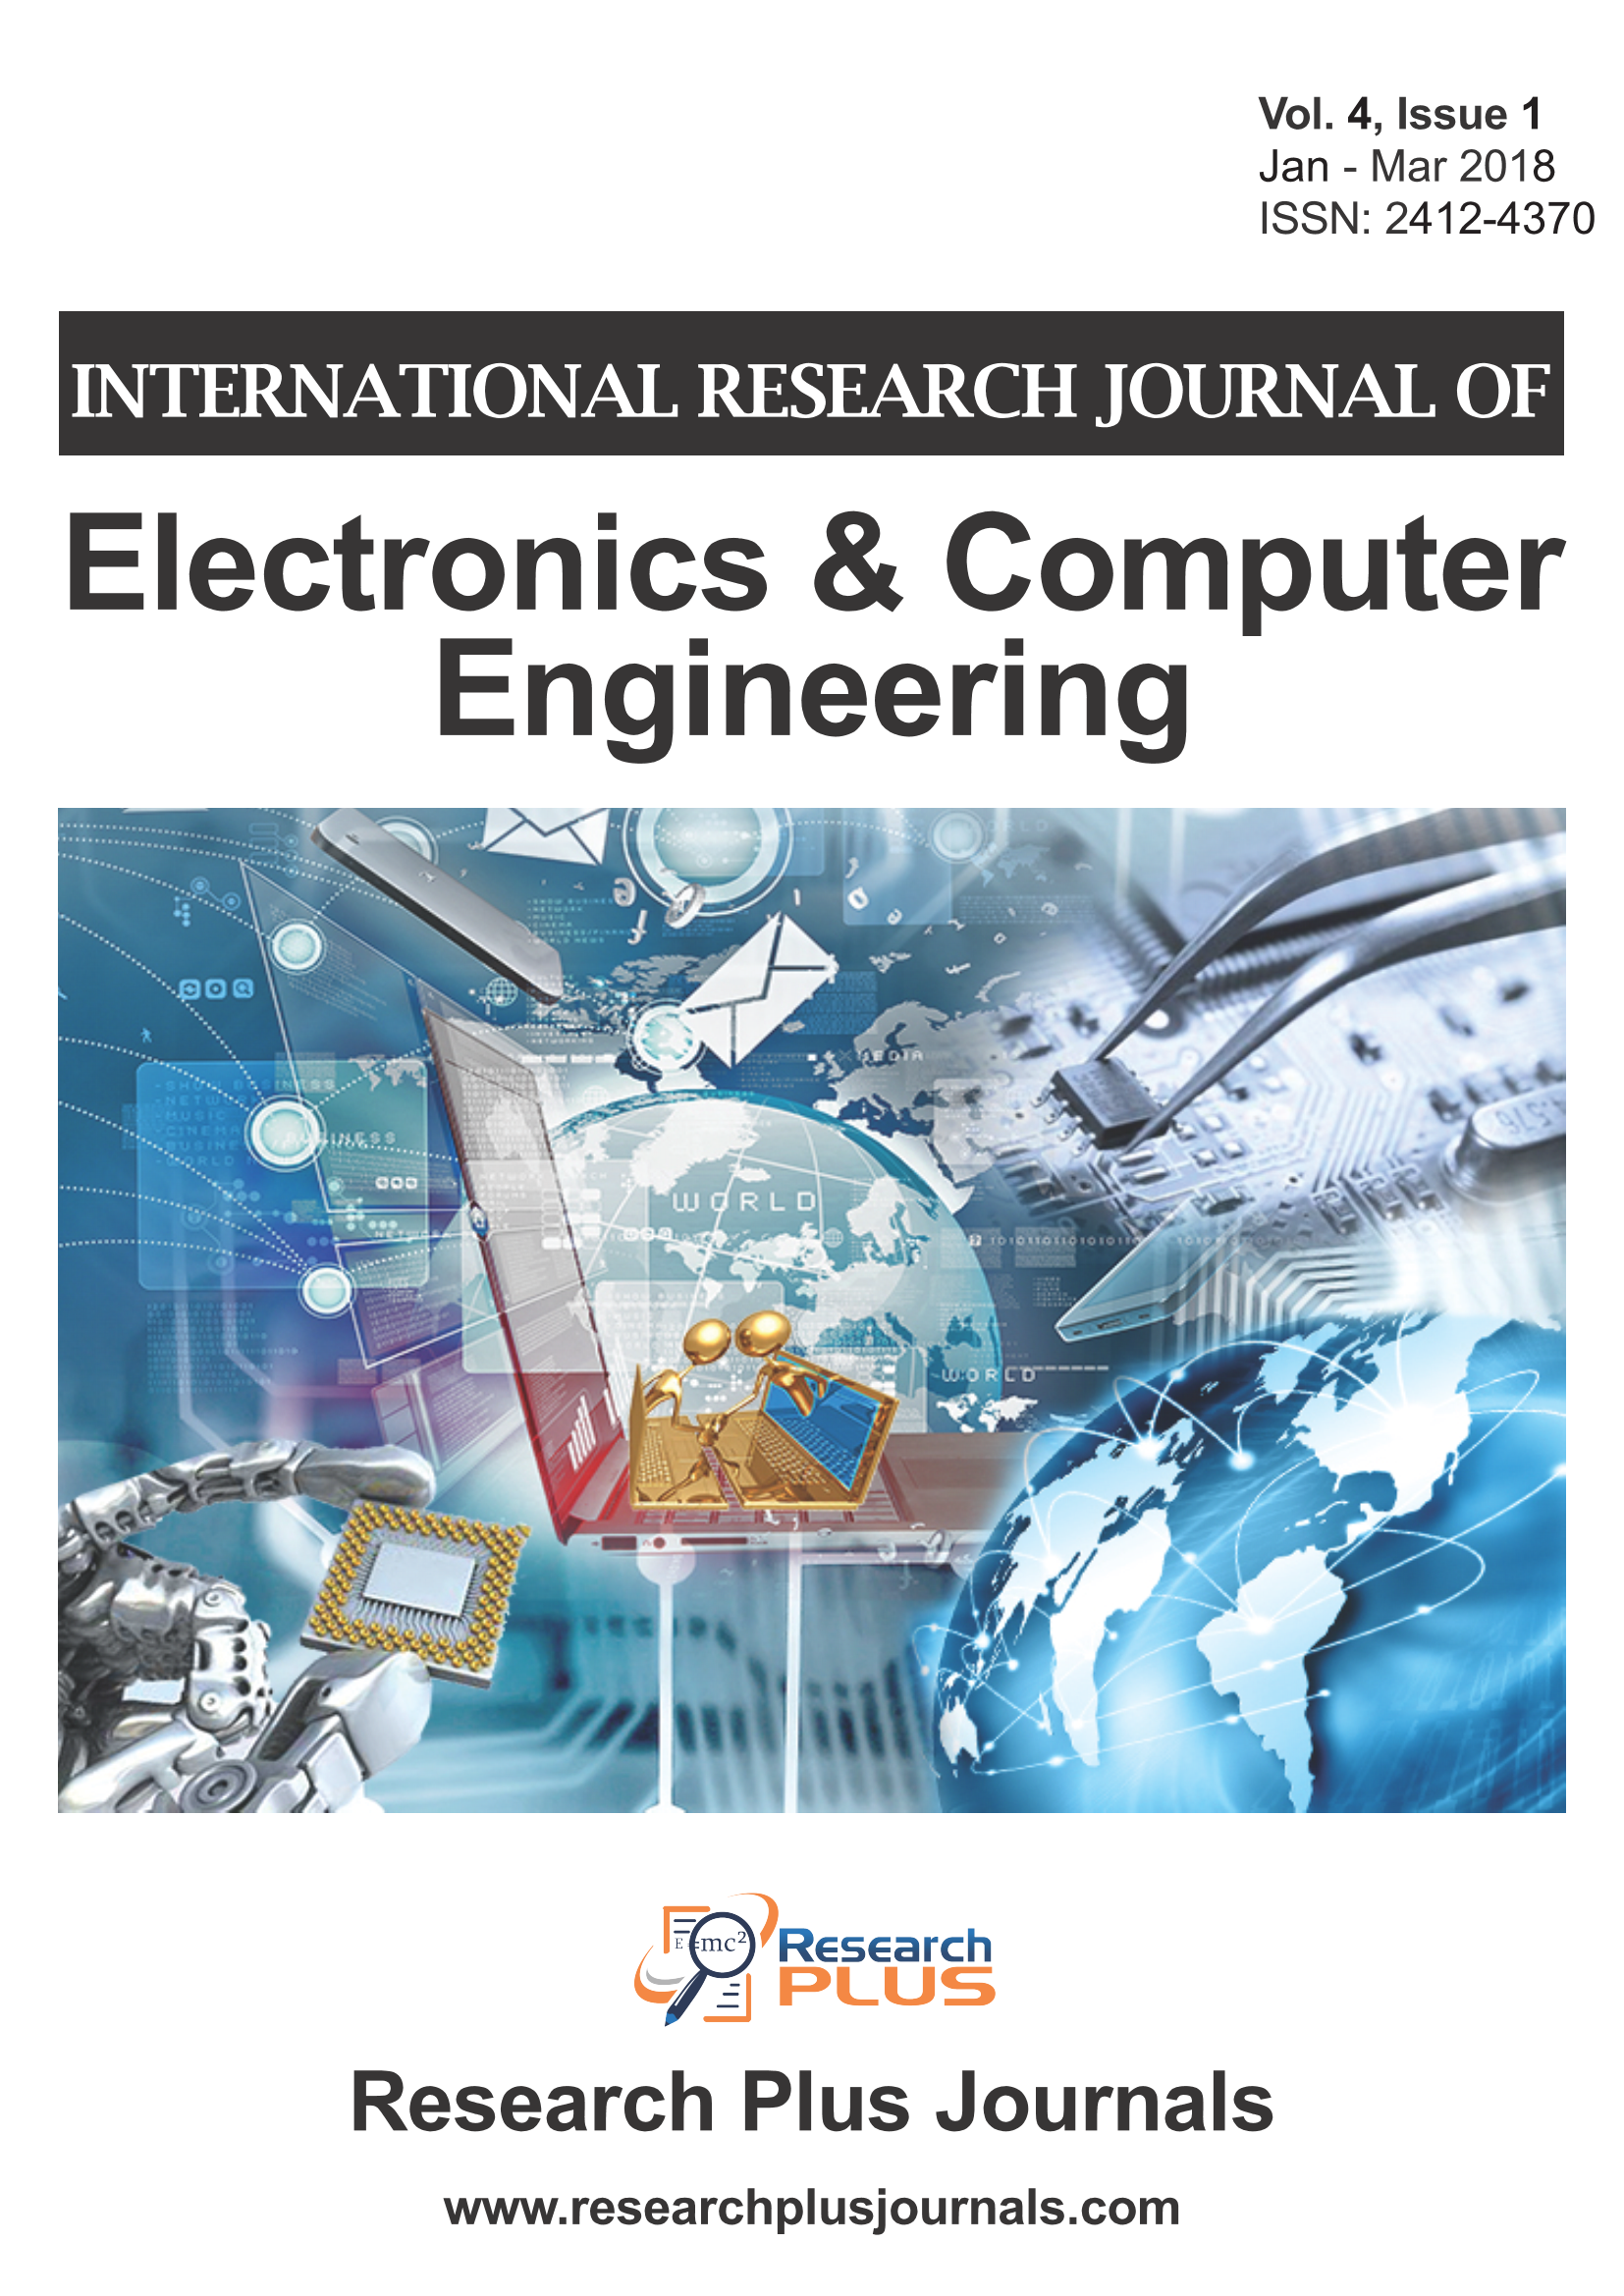 Volume 4, Issue 1, International Research Journal of Electronics & Computer Engineering (IRJECE) (Online ISSN : 2412-4370)